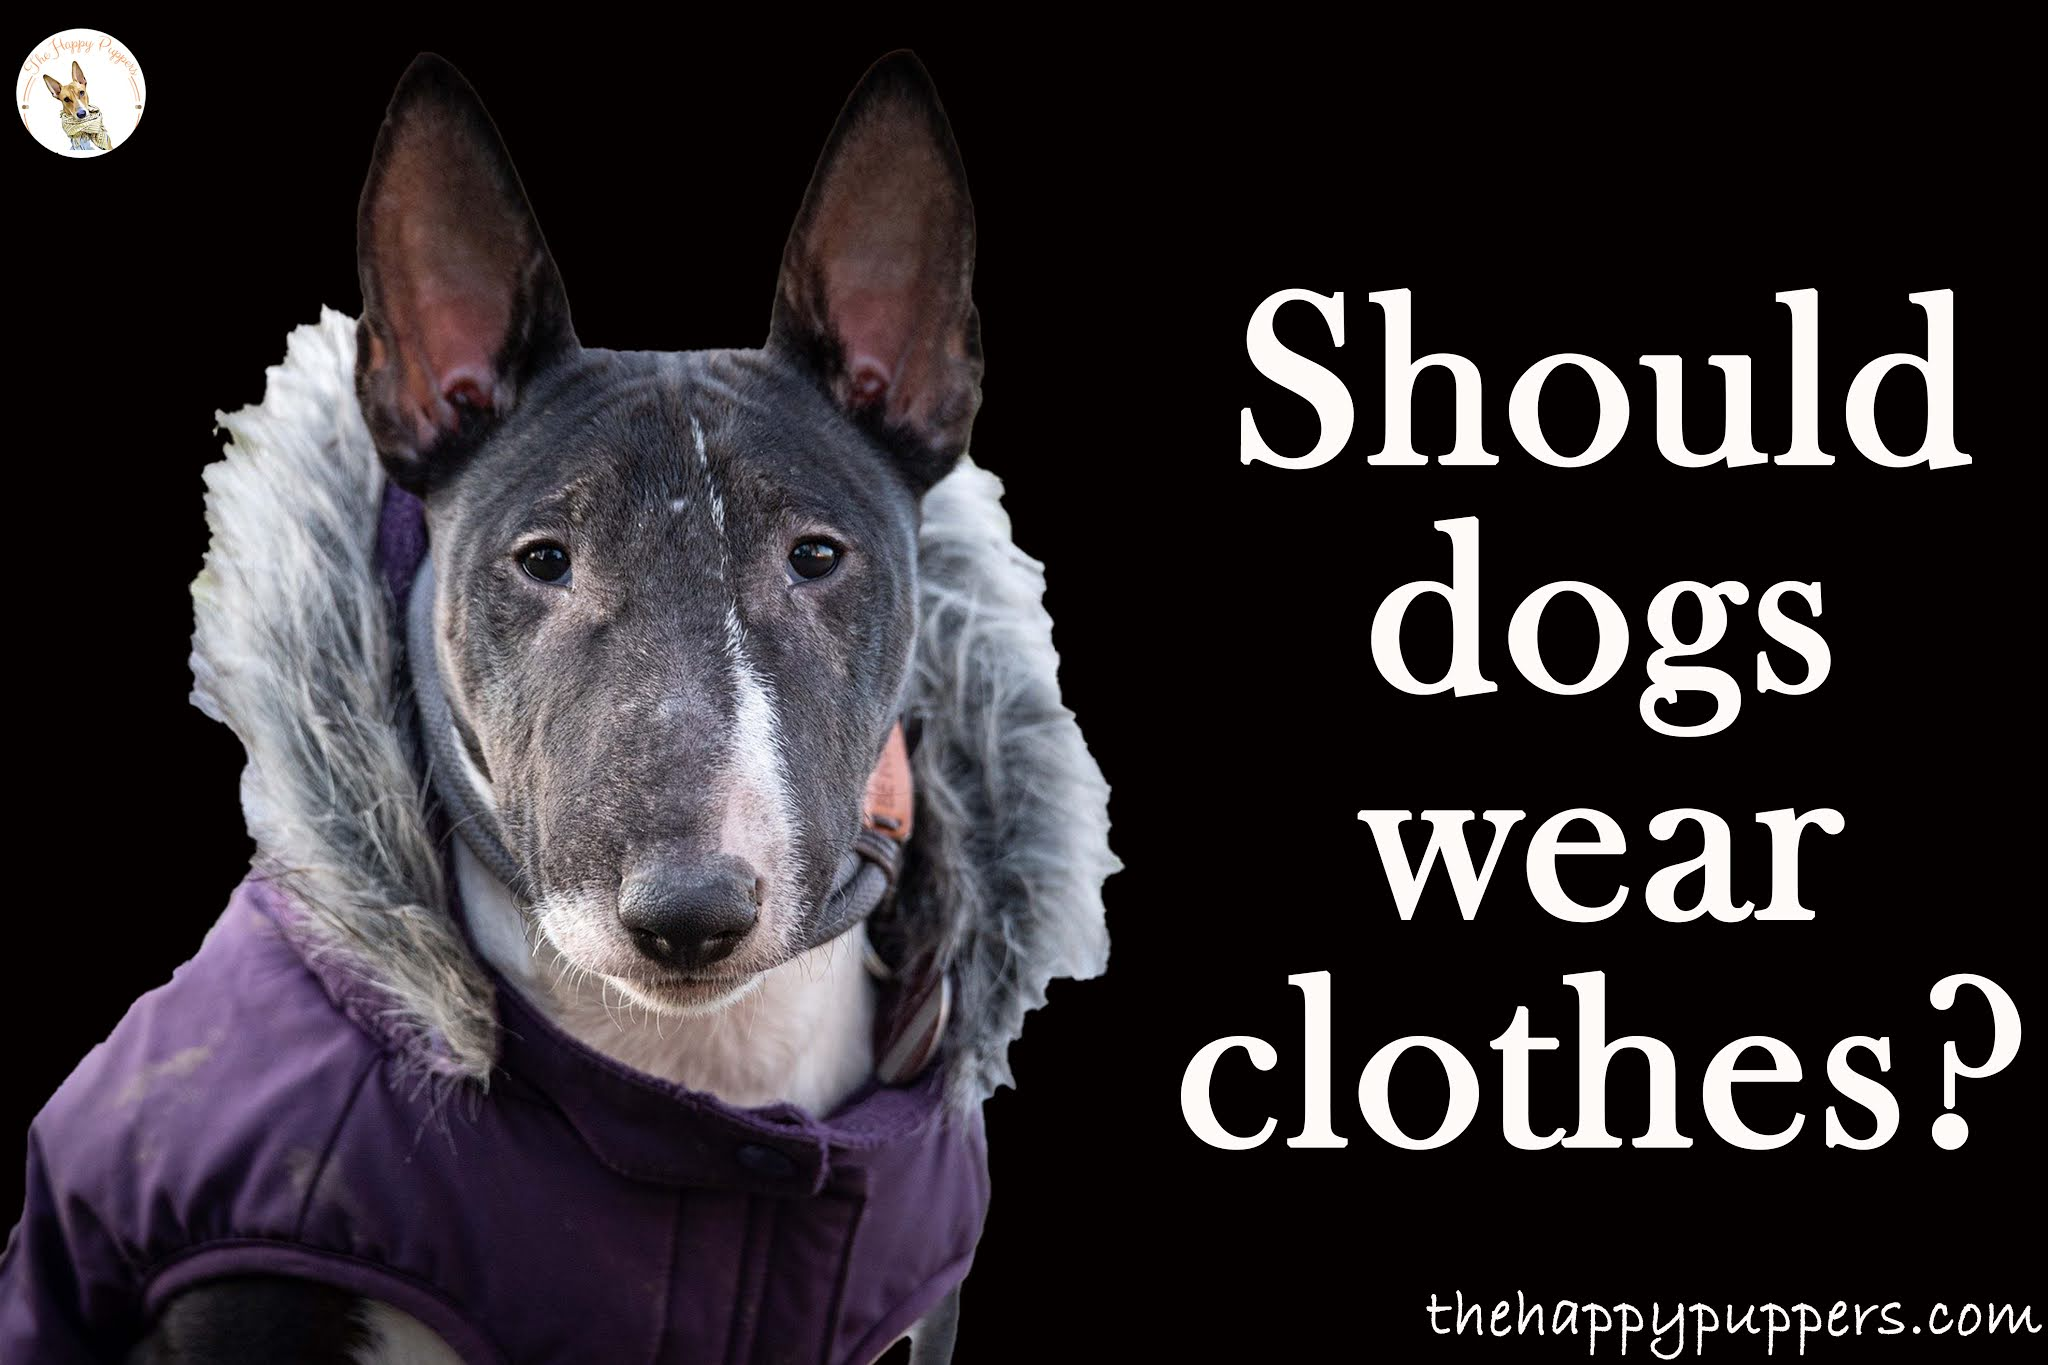 Should dogs wear clothes?